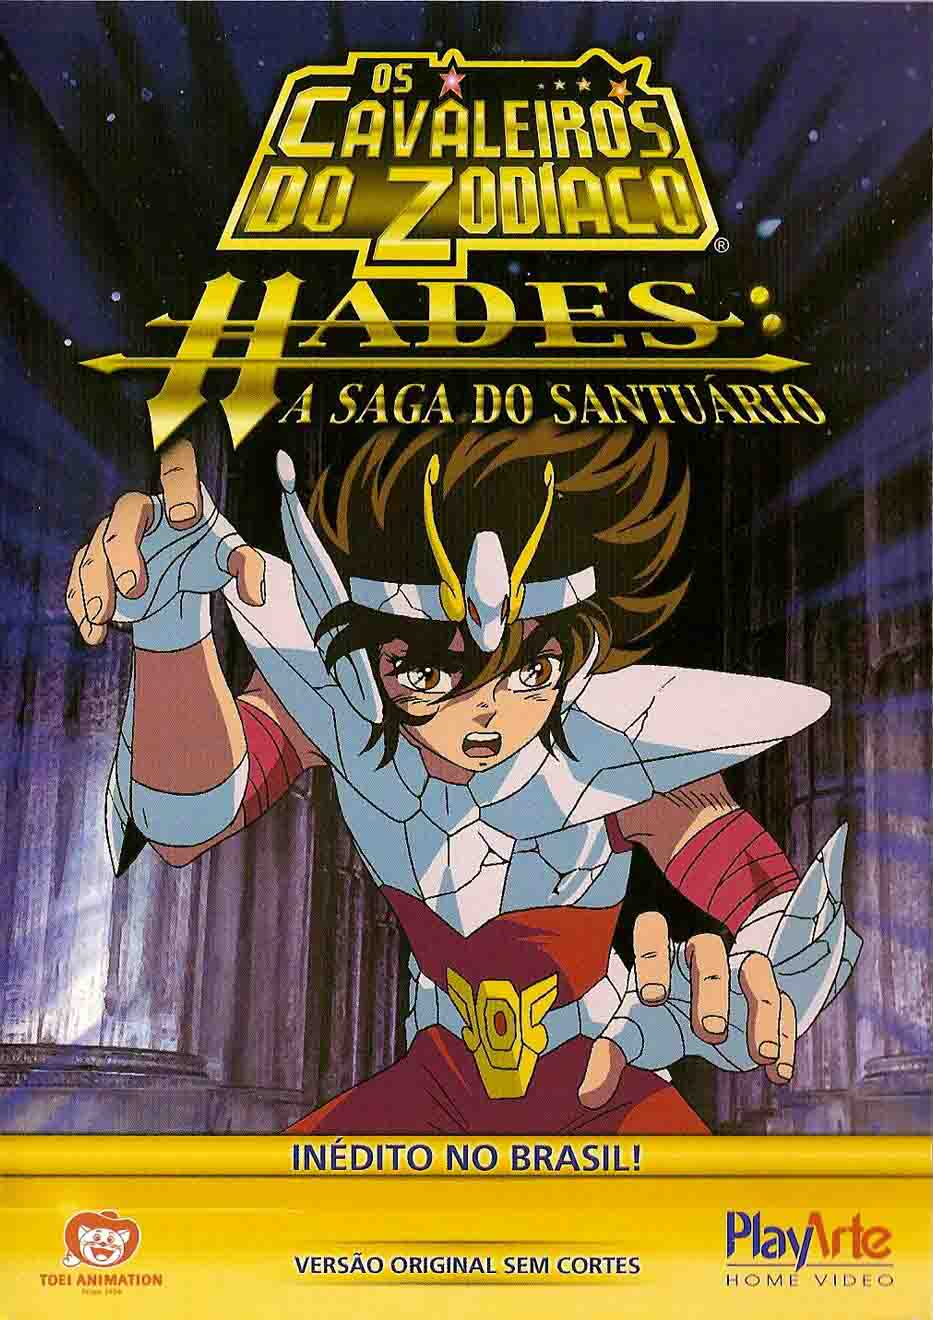 Os Cavaleiros do Zodíaco Hades: A Saga do Santuário Torrent - BluRay 1080p Dual Áudio